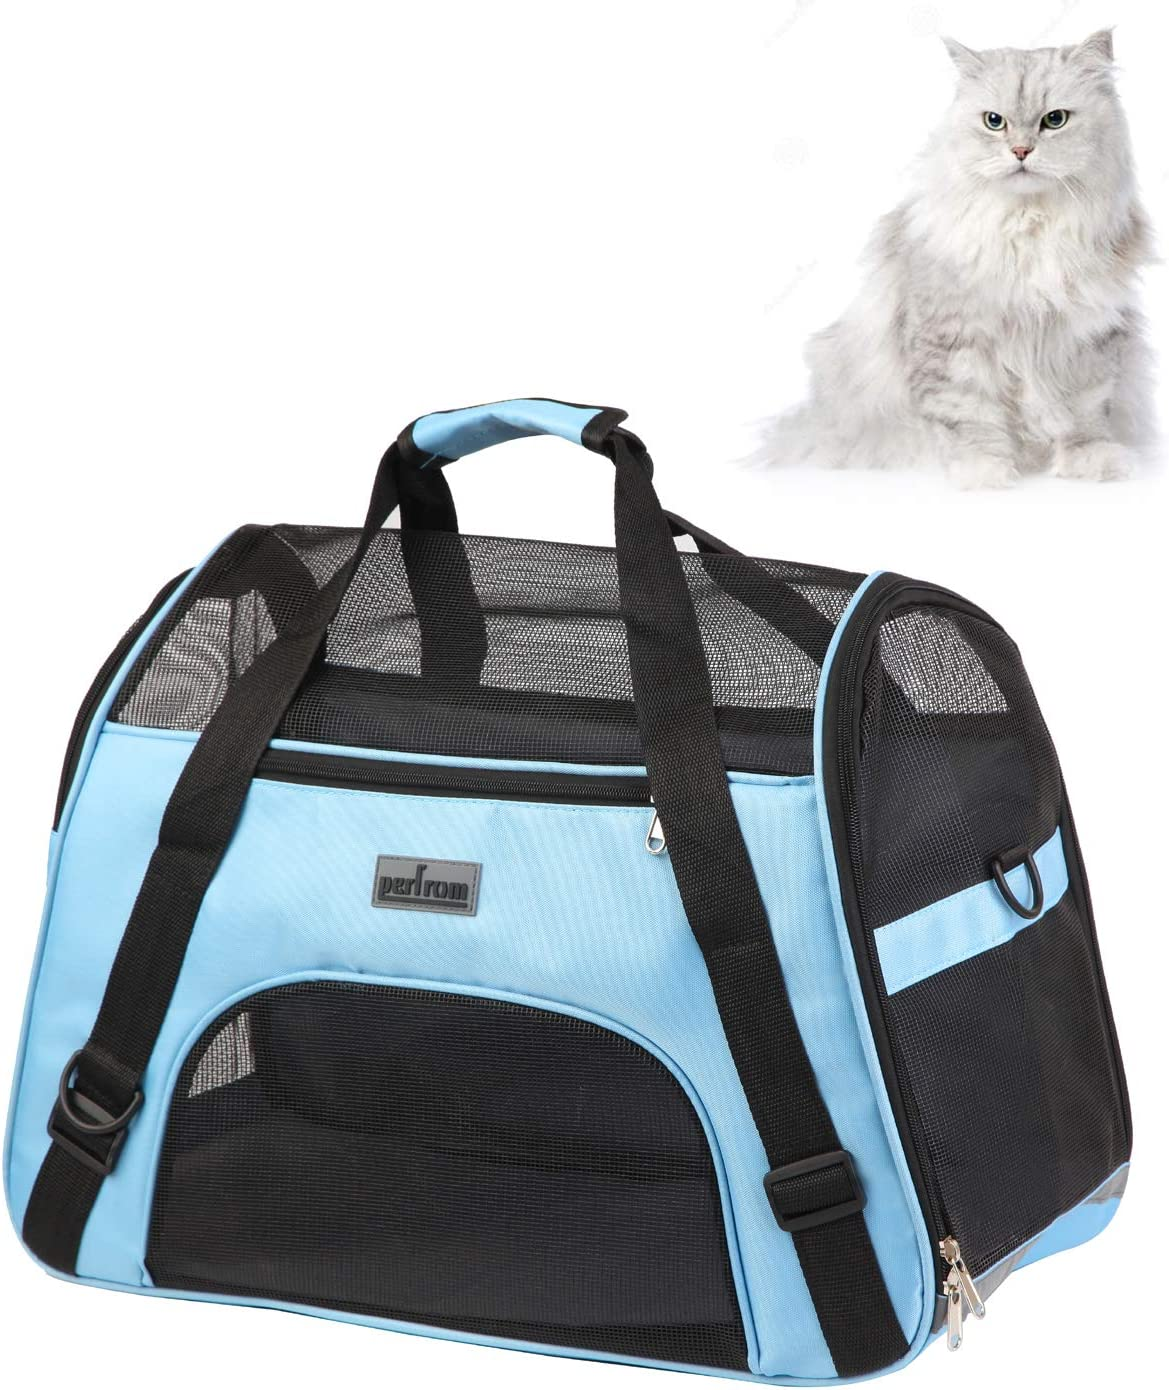 Soft Pet Carrier Airline Approved Soft Sided Pet Travel Carrying Handbag Under Seat Compatibility, Perfect for Small Cats and Small Dogs Breathable 4-Windows Design-Small Size(Blue) : Pet Supplies